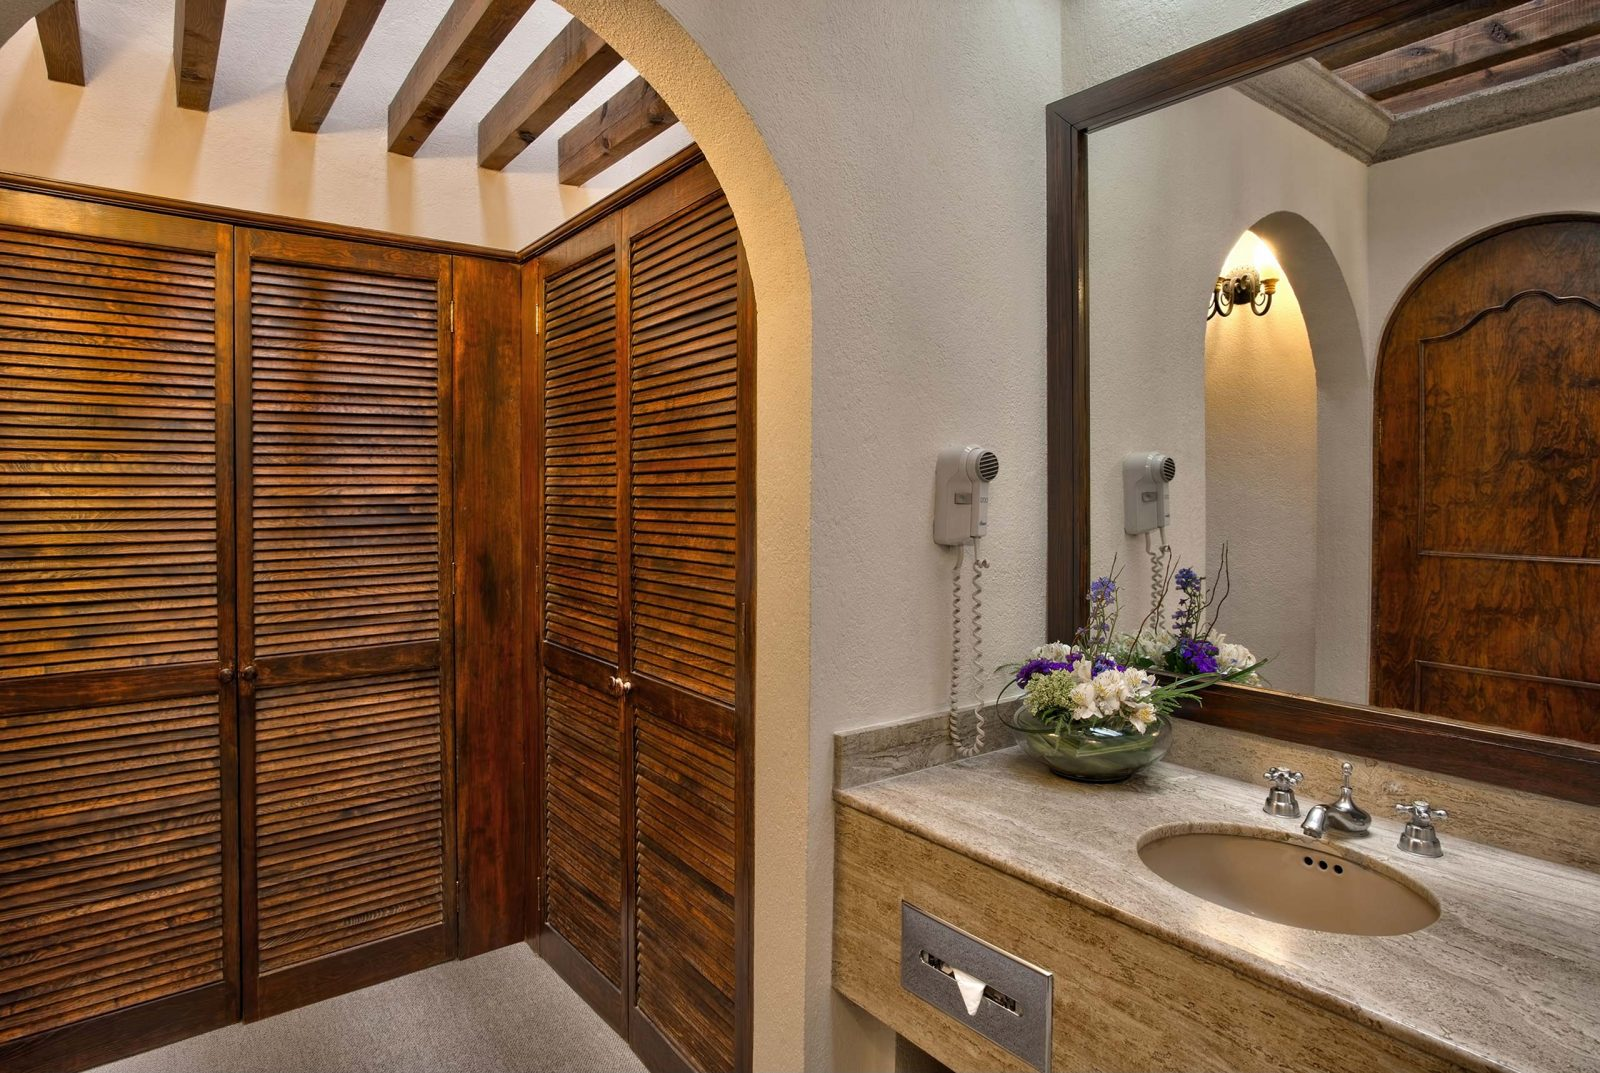 Master suite bathroom Hotel Hacienda Jurica by Brisas Queretaro